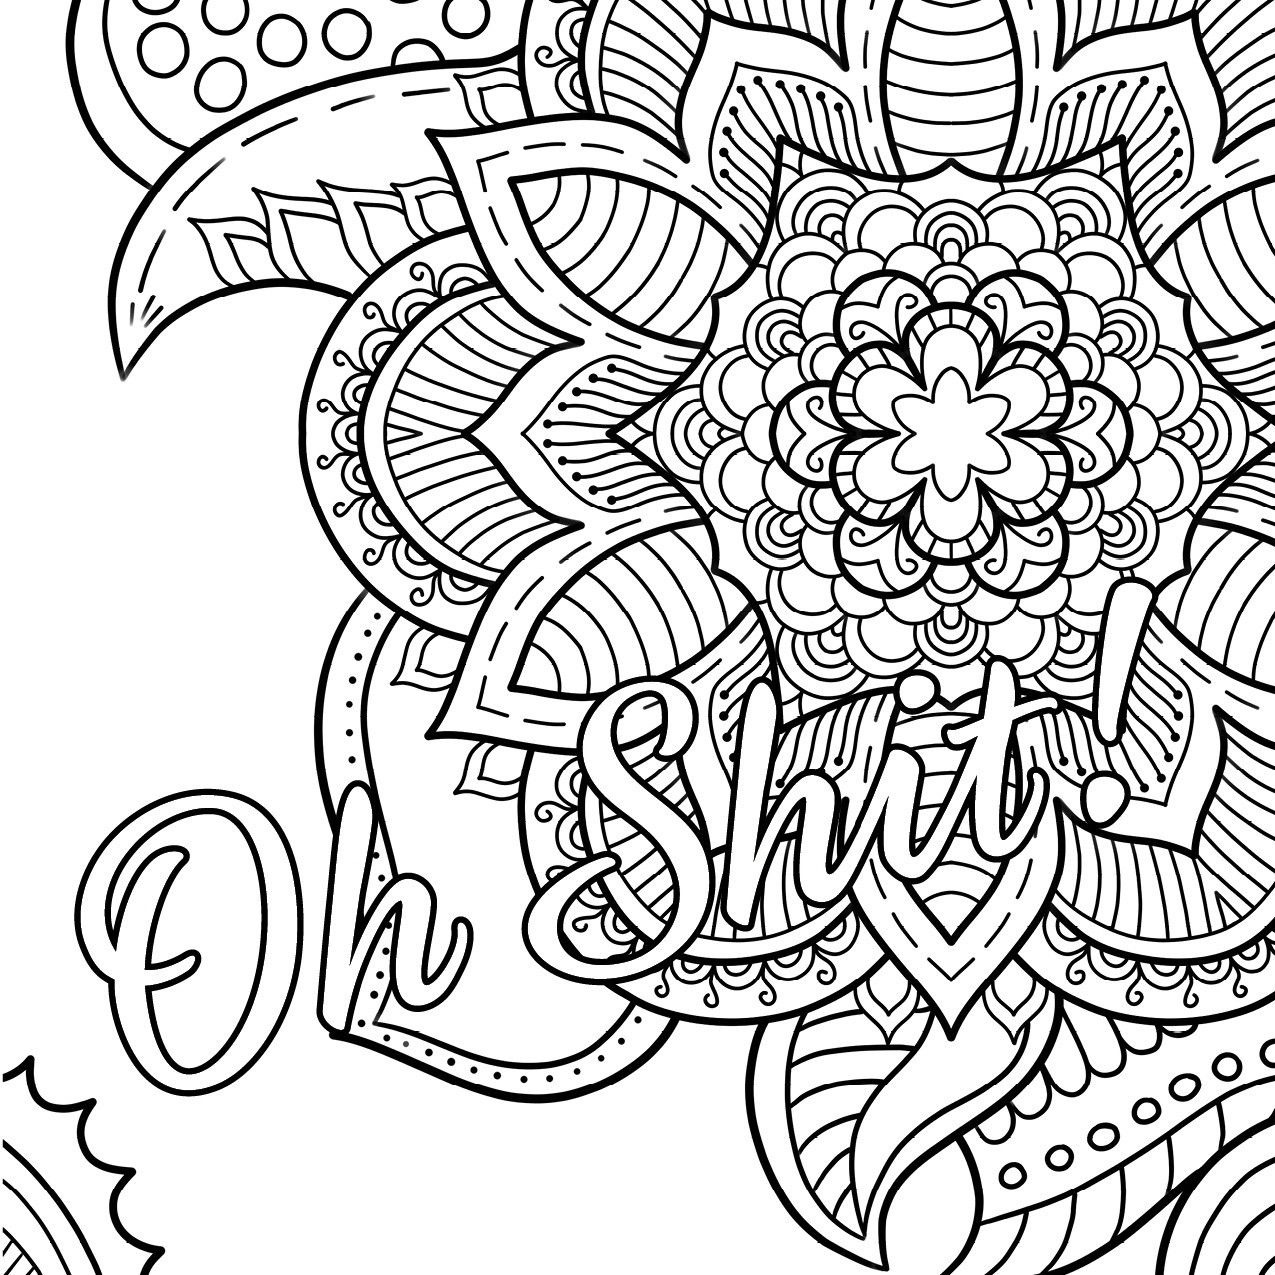 Swear Word Coloring Book  2 Free Printable Coloring Pages For